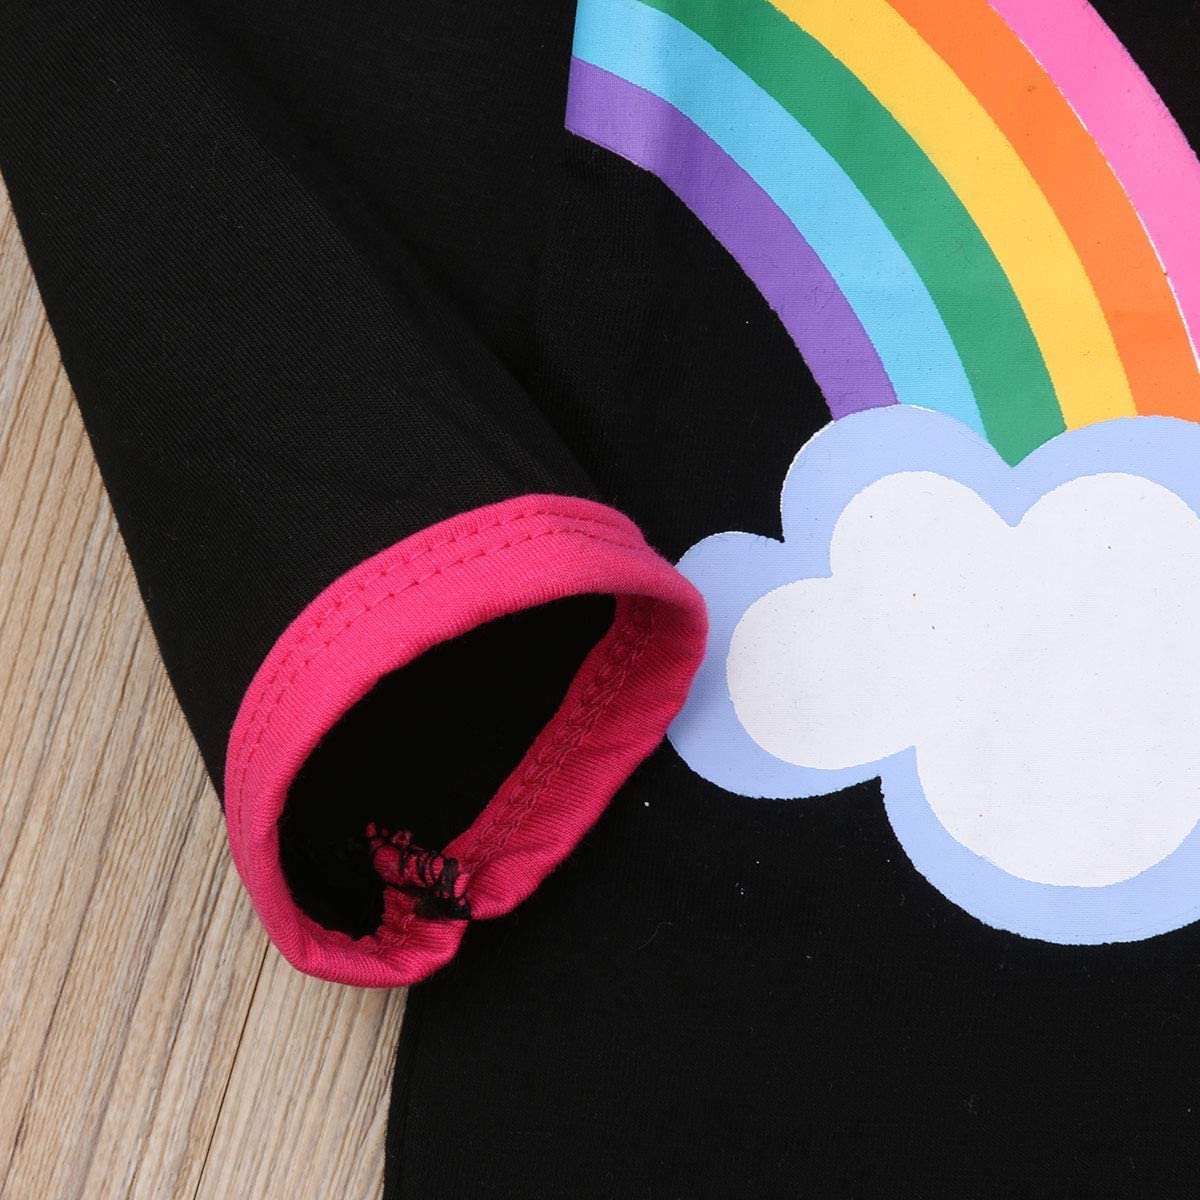 Suspender Tutu Skirt Dress Party Outfits Clothes Baby Girls Bowknot Crop Tops